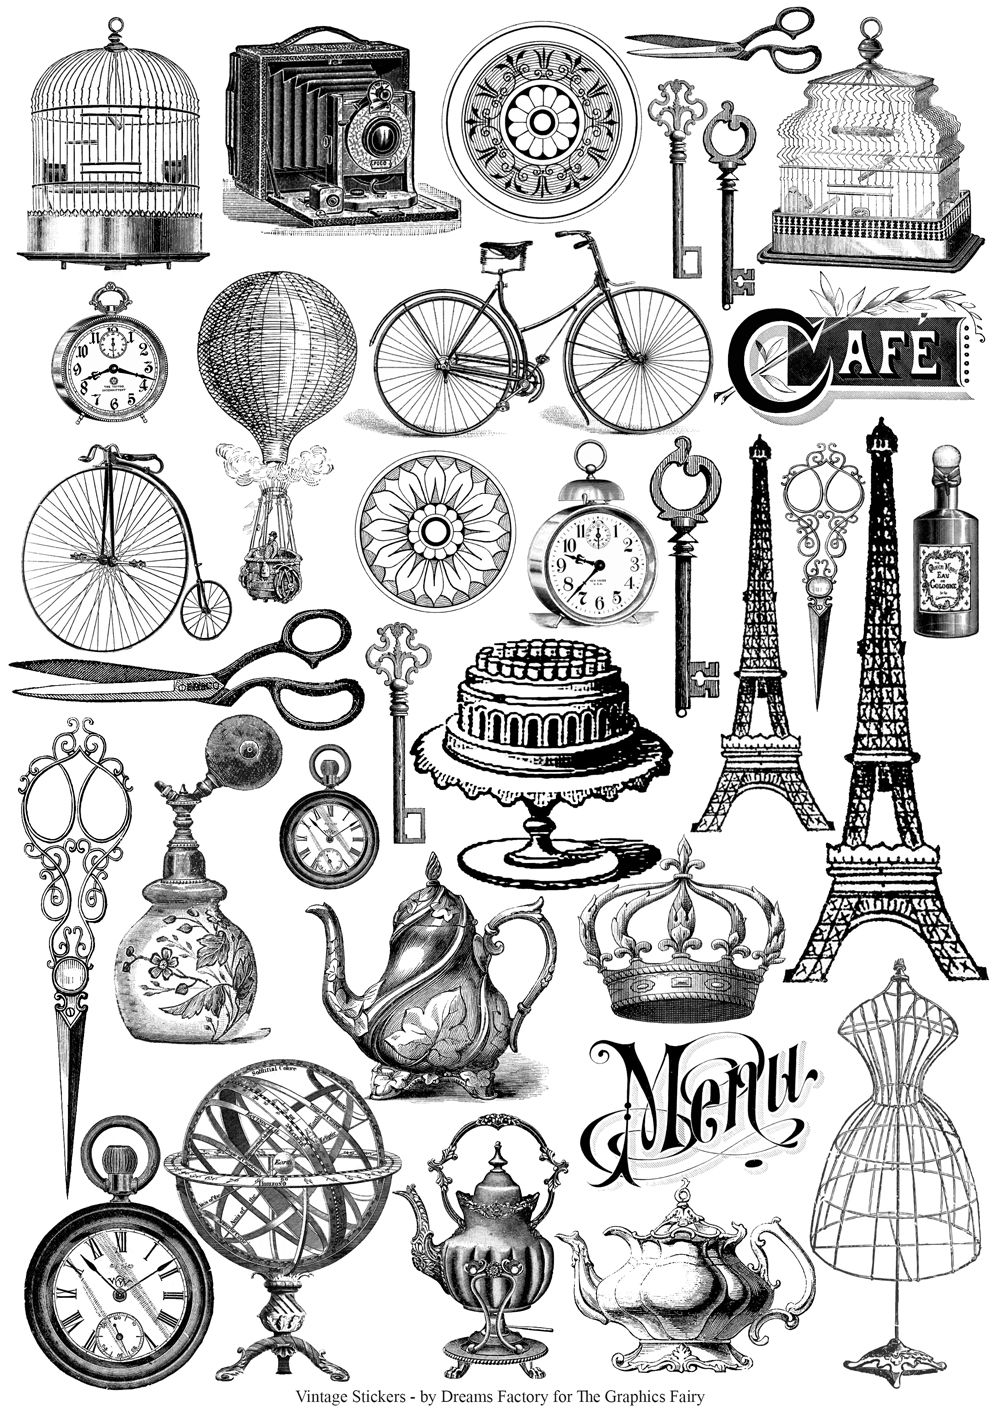 How To Make Stickers Free Printable Free Stencils Printables Templates Scrapbook Printables Free Free Stencils Printables